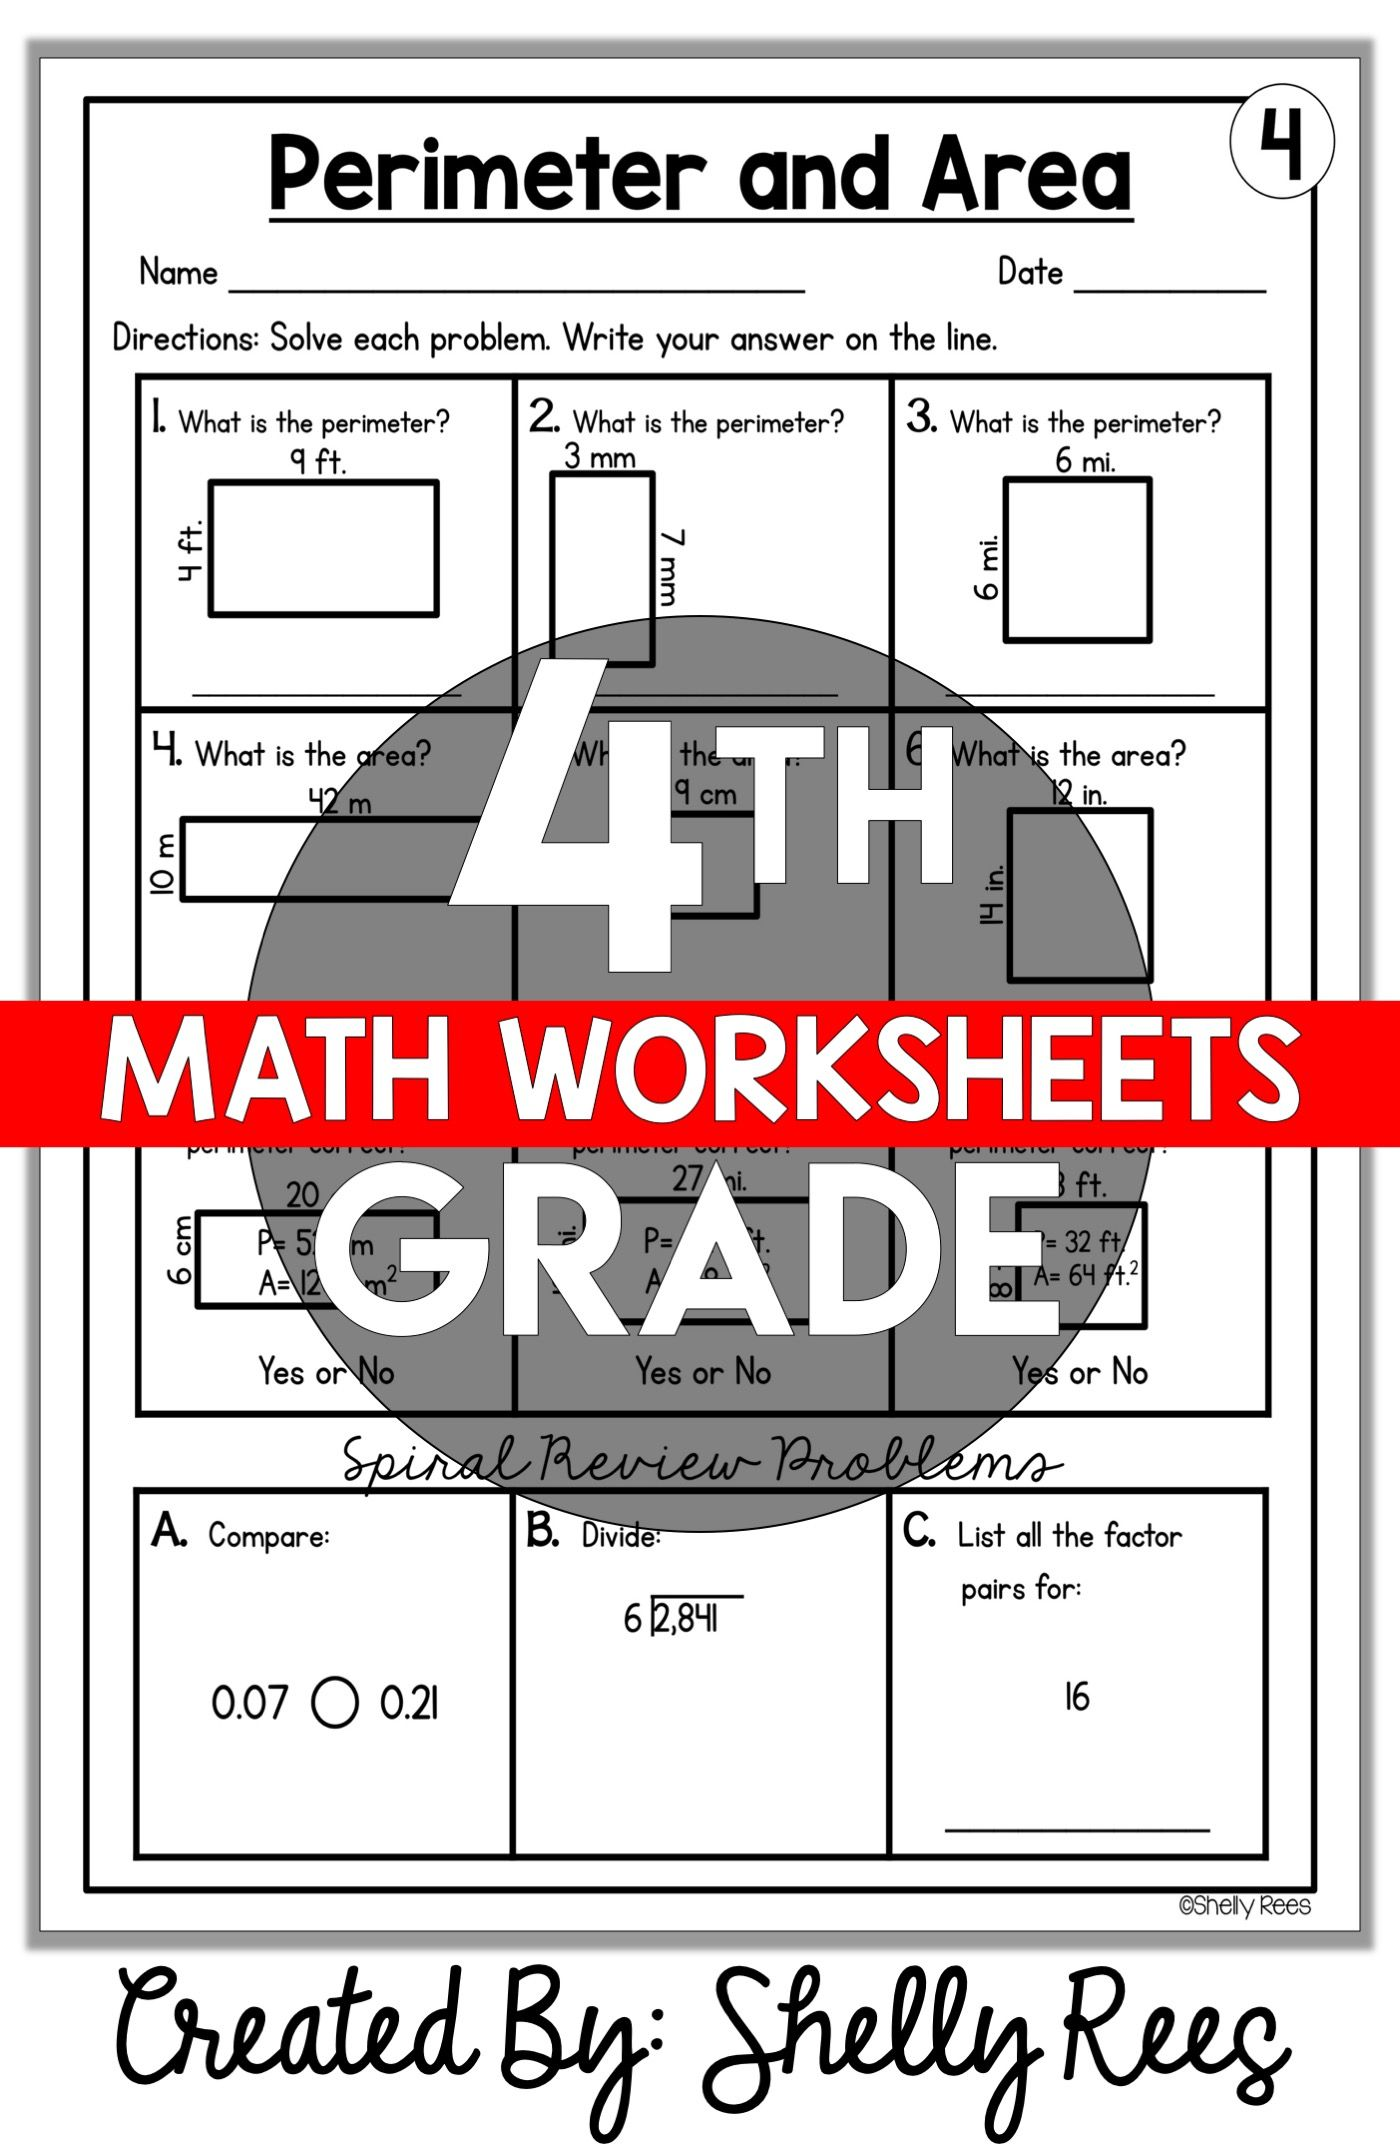 hight resolution of 4th Grade Math Worksheets Free and Printable - Appletastic Learning   Math  worksheets